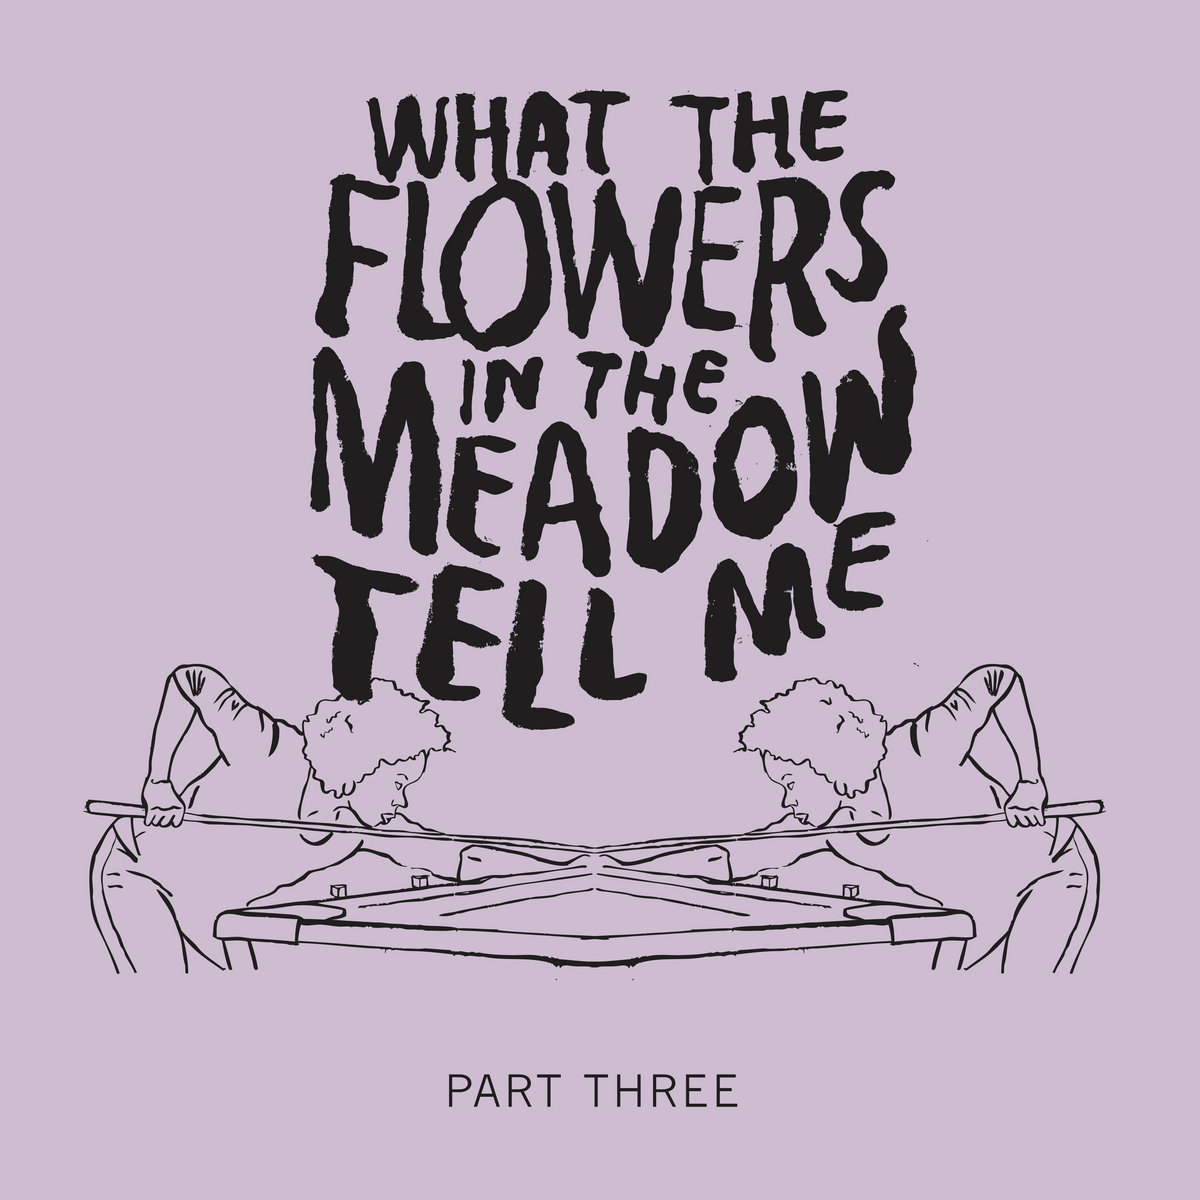 Ep. 4 | What the Flowers in the Meadow Tell Me (Part 3) by The Fruit Stare